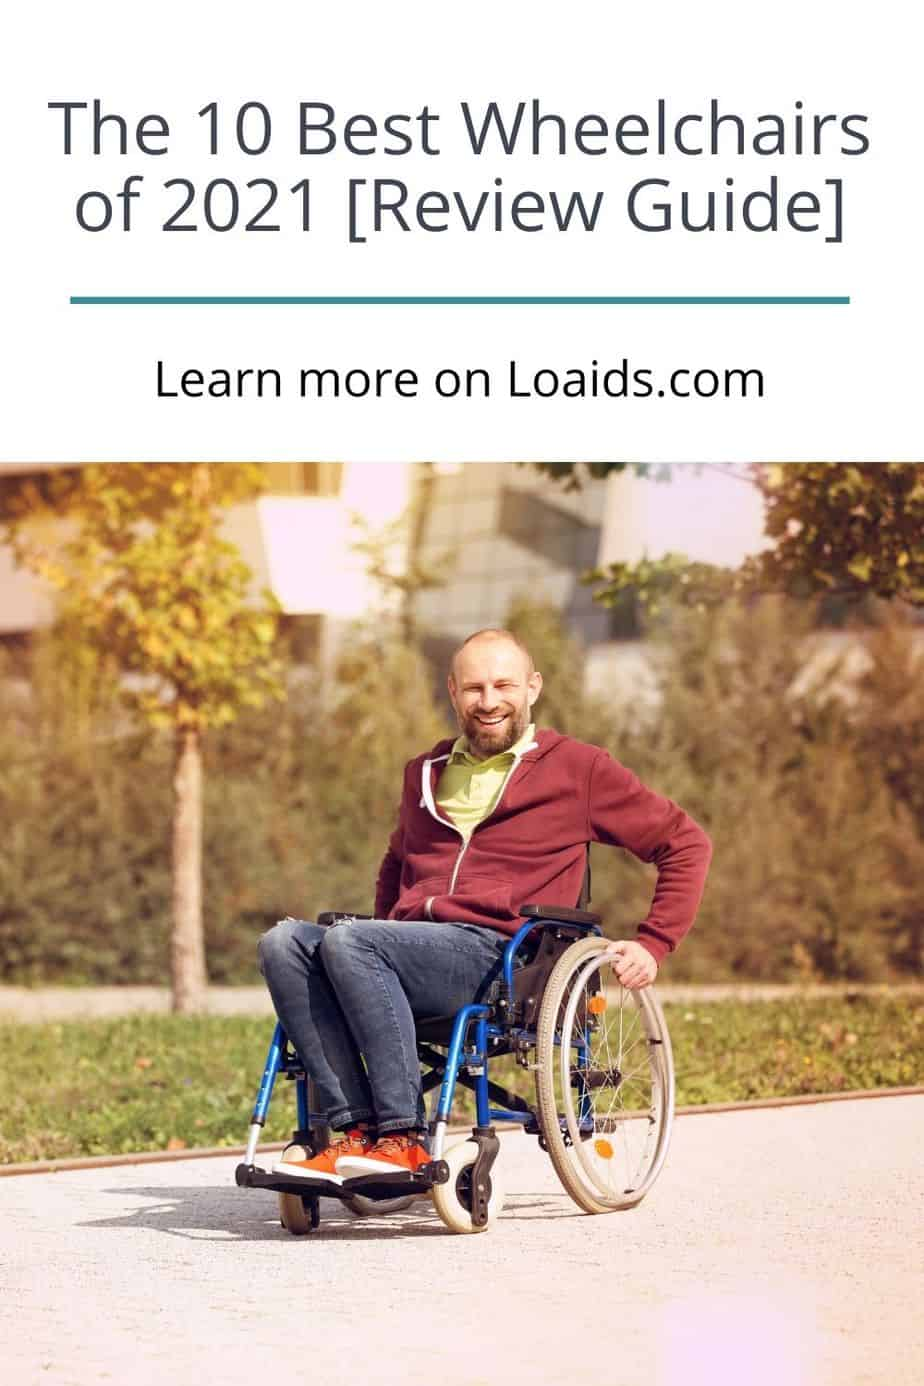 Are you looking for the best wheelchair to help you regain independence as a wheelchair user? Check out our expert's in-depth review of the top 10 best options!